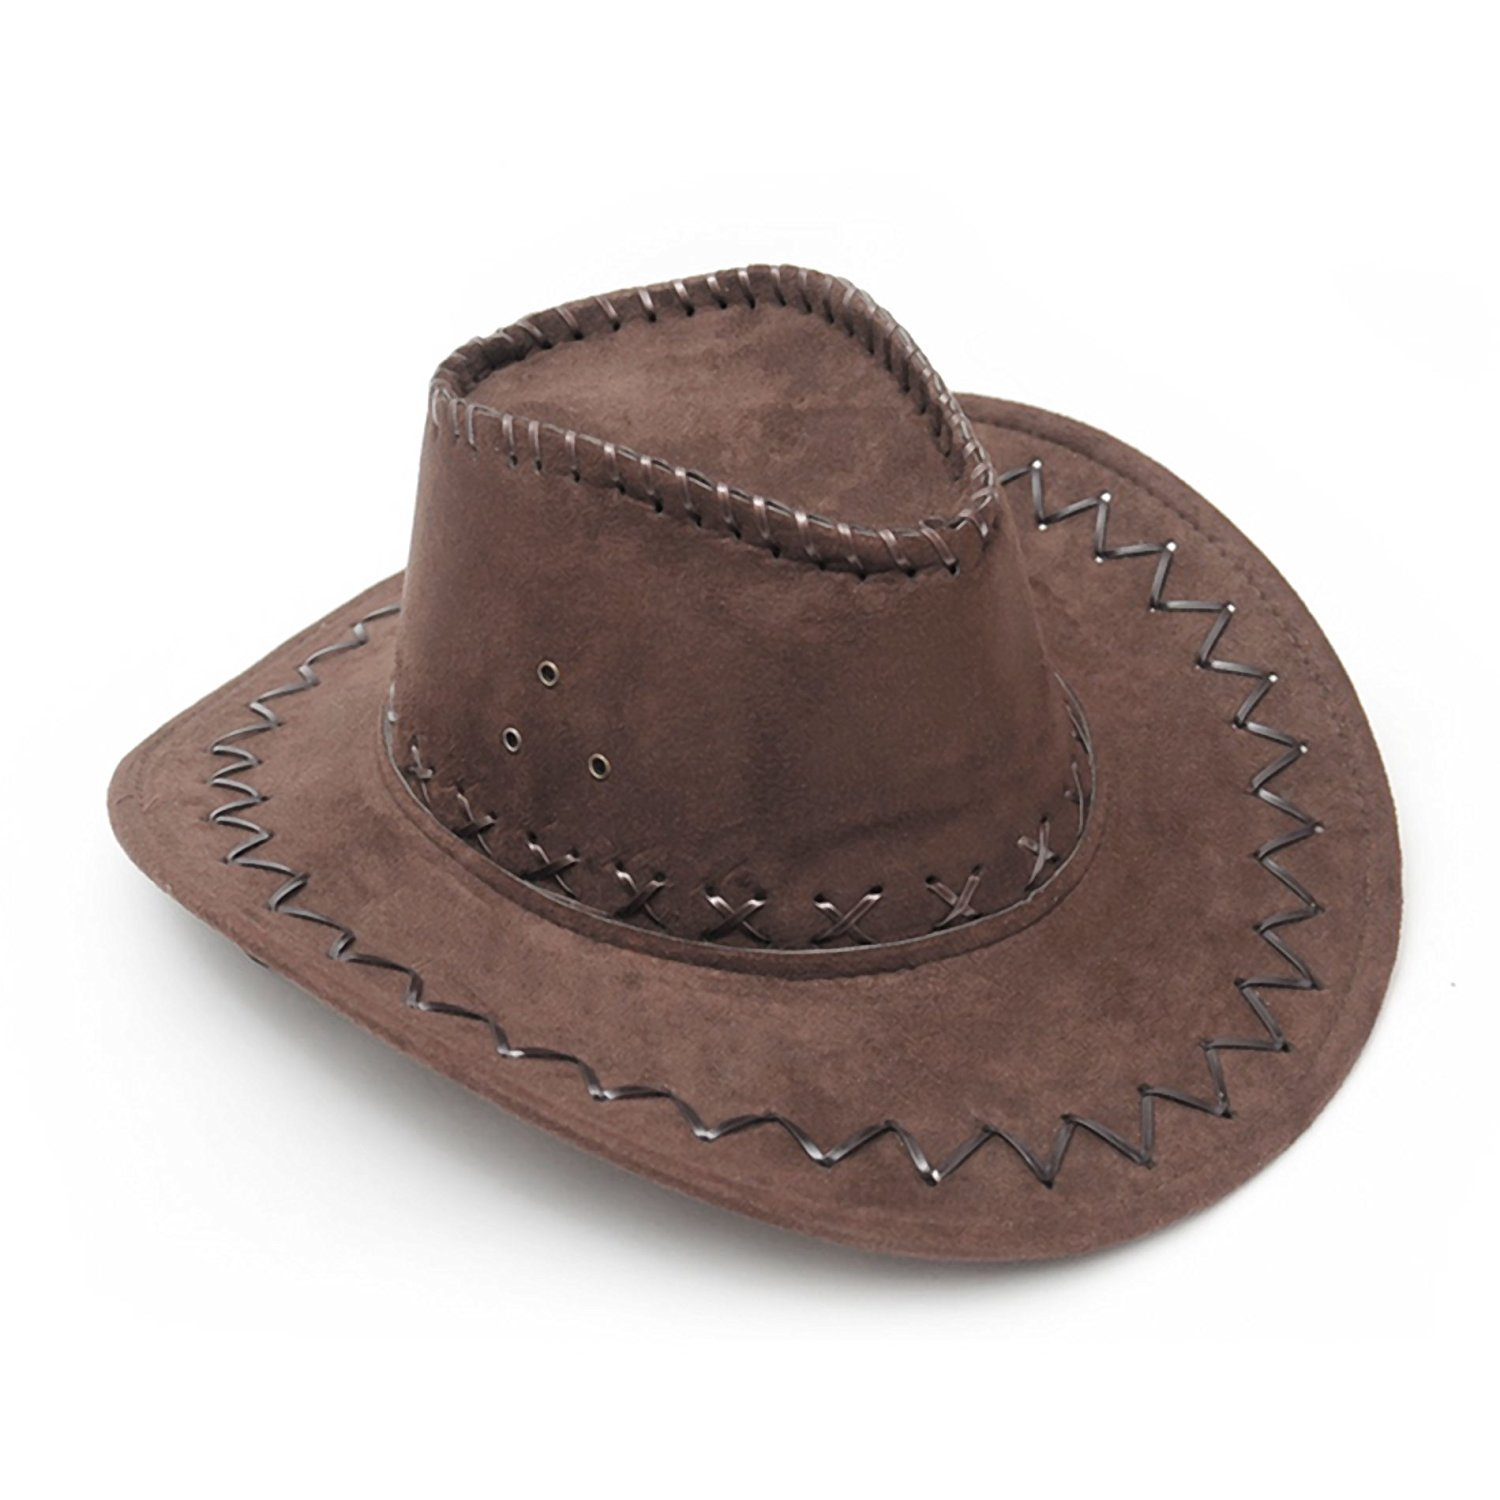 HMILYDYK Cowboy Hat Fancy Dress Accessory Wide Brim Western Cowgirl ... e7d266598083